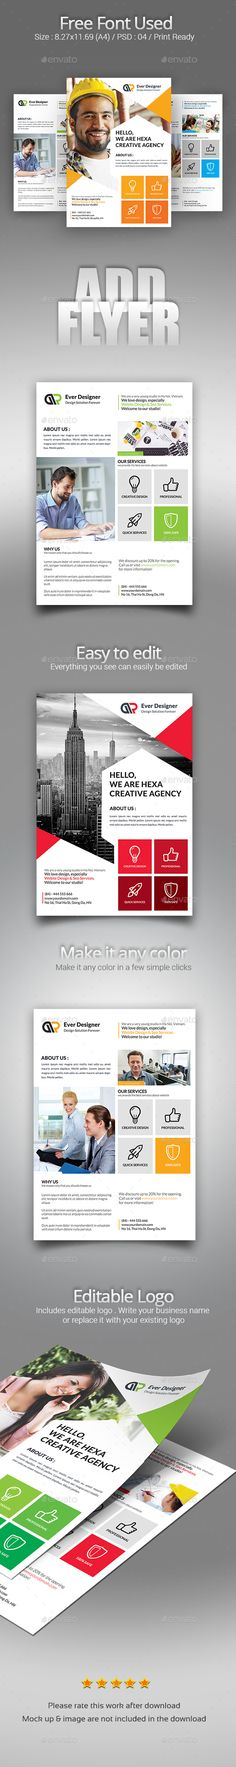 Corporate Business Flyer Template PSD Bundle. Download here: https://graphicriver.net/item/corporate-business-flyer-bundle/17621867?ref=ksioks